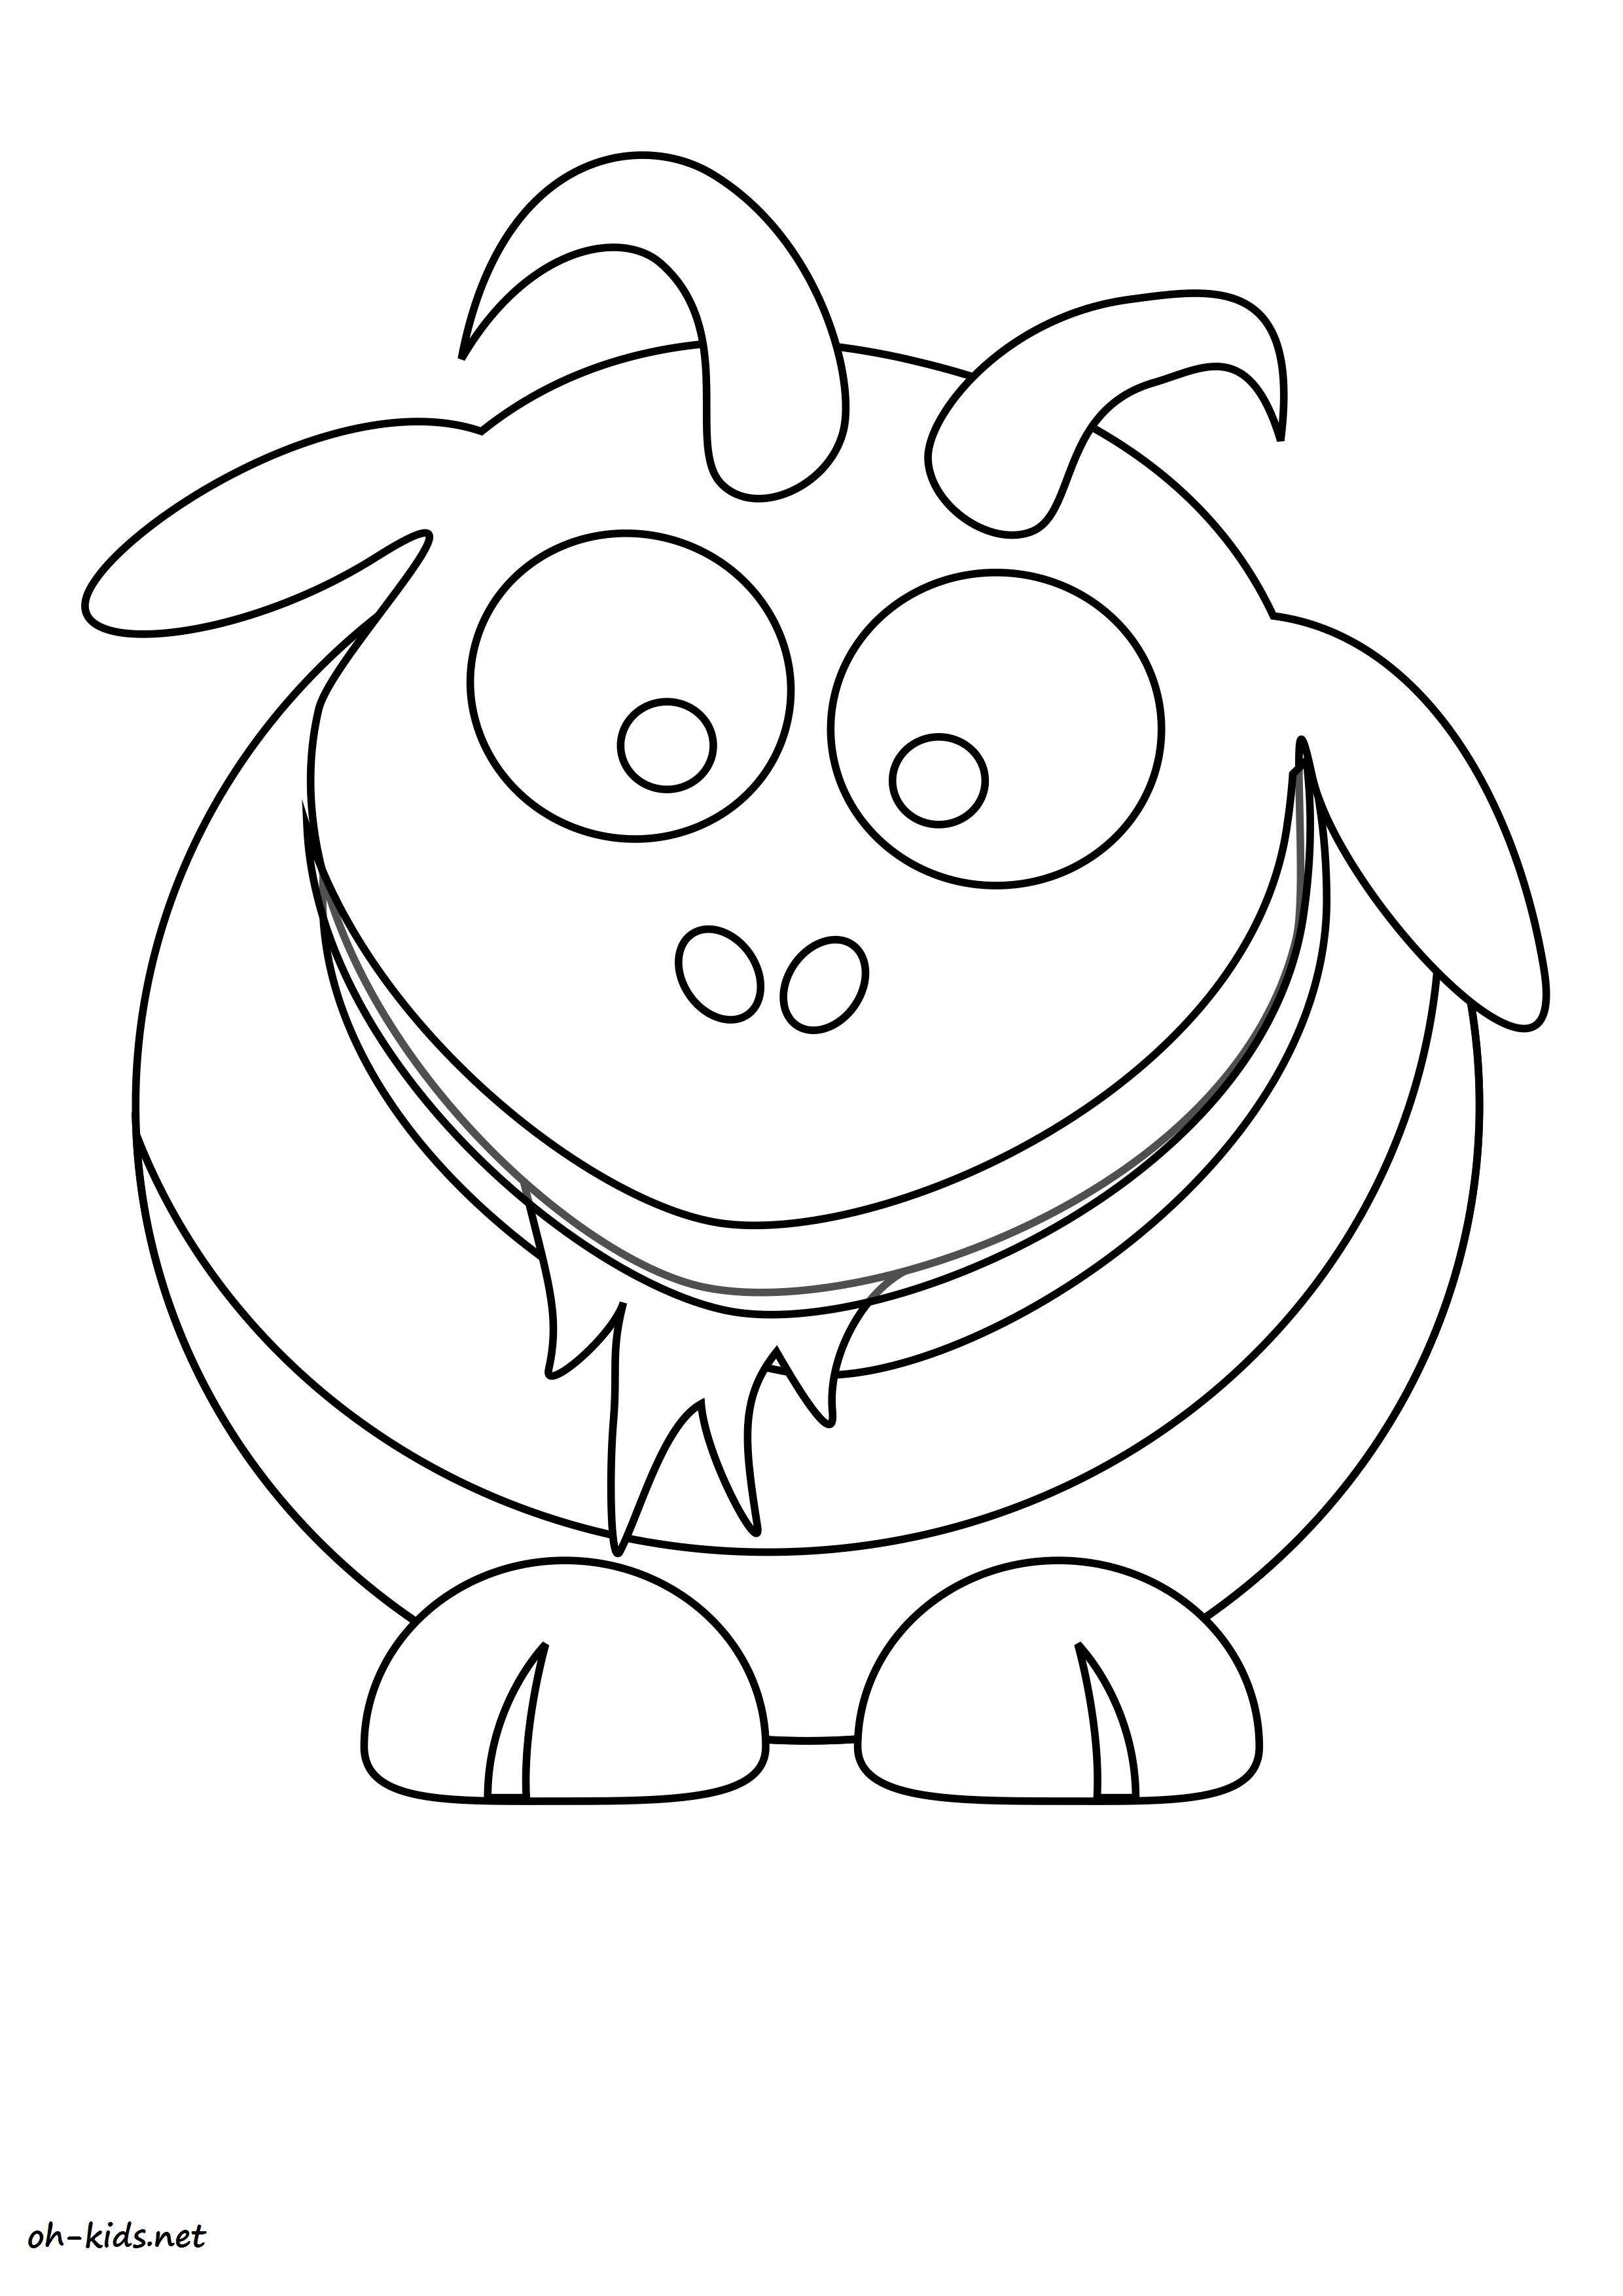 Coloriage animaux page 18 of 84 oh kids fr - Coloriage de chevre ...